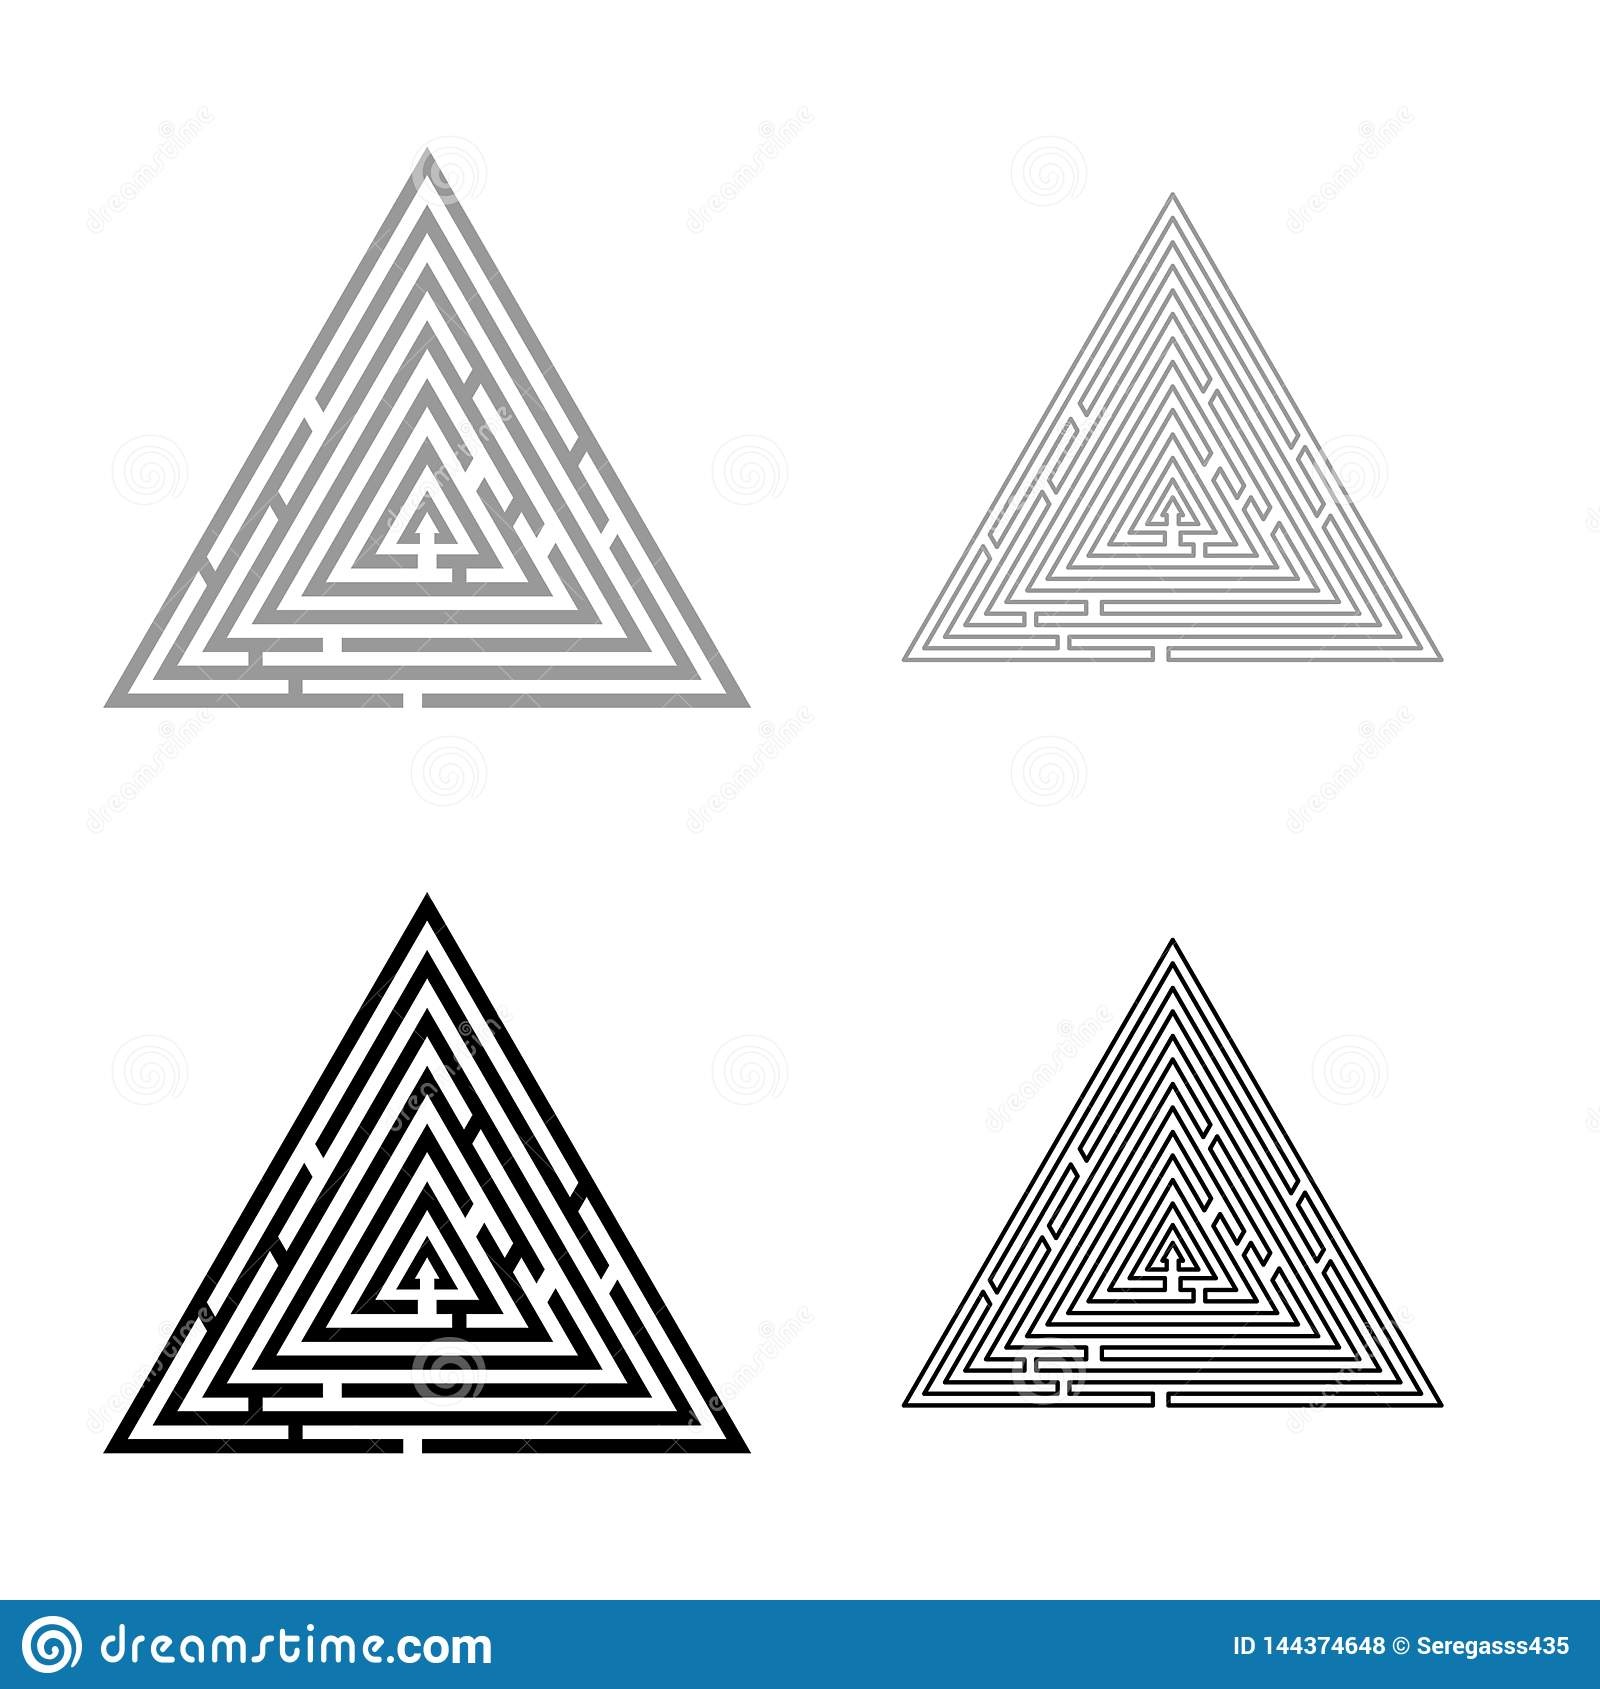 Triangular labyrinth Maze conundrum Labyrinth conundrum icon set black color vector illustration flat style image